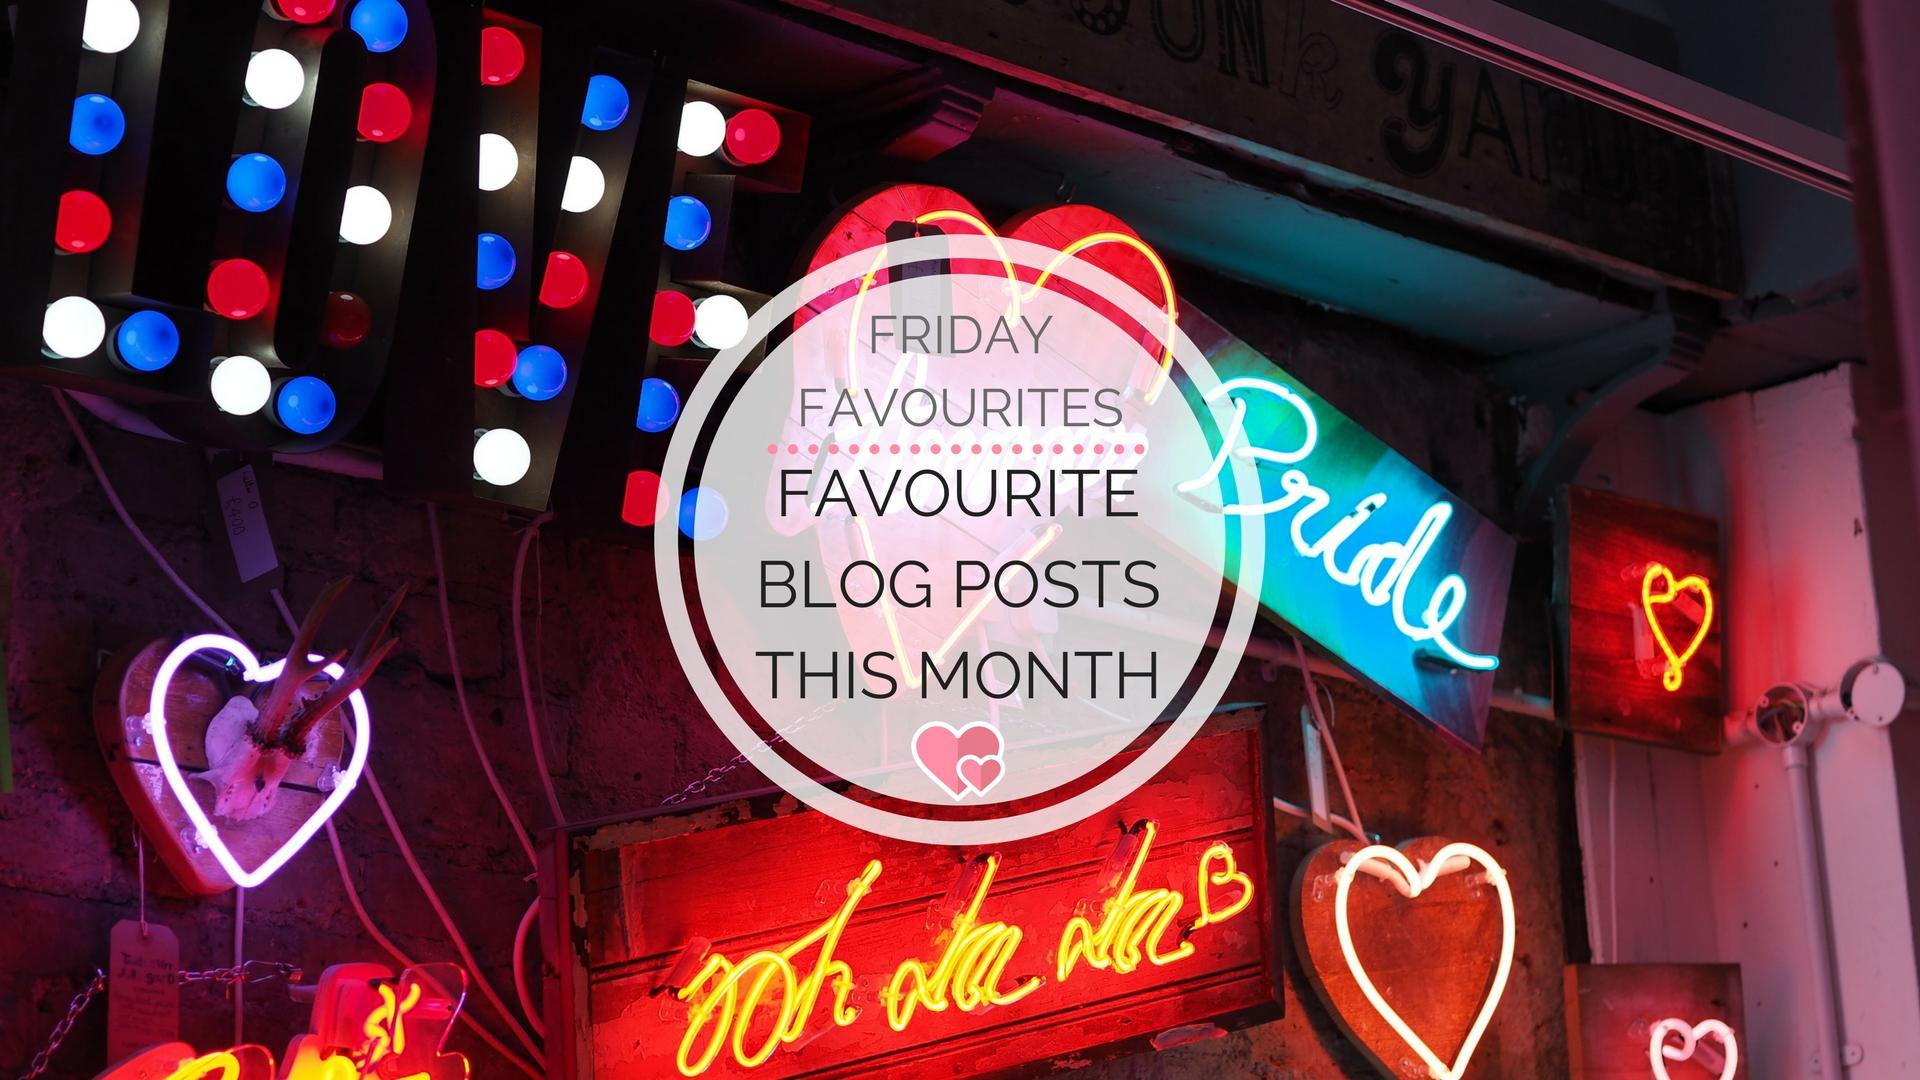 My Favourite Blog Posts In May    Friday Favourites